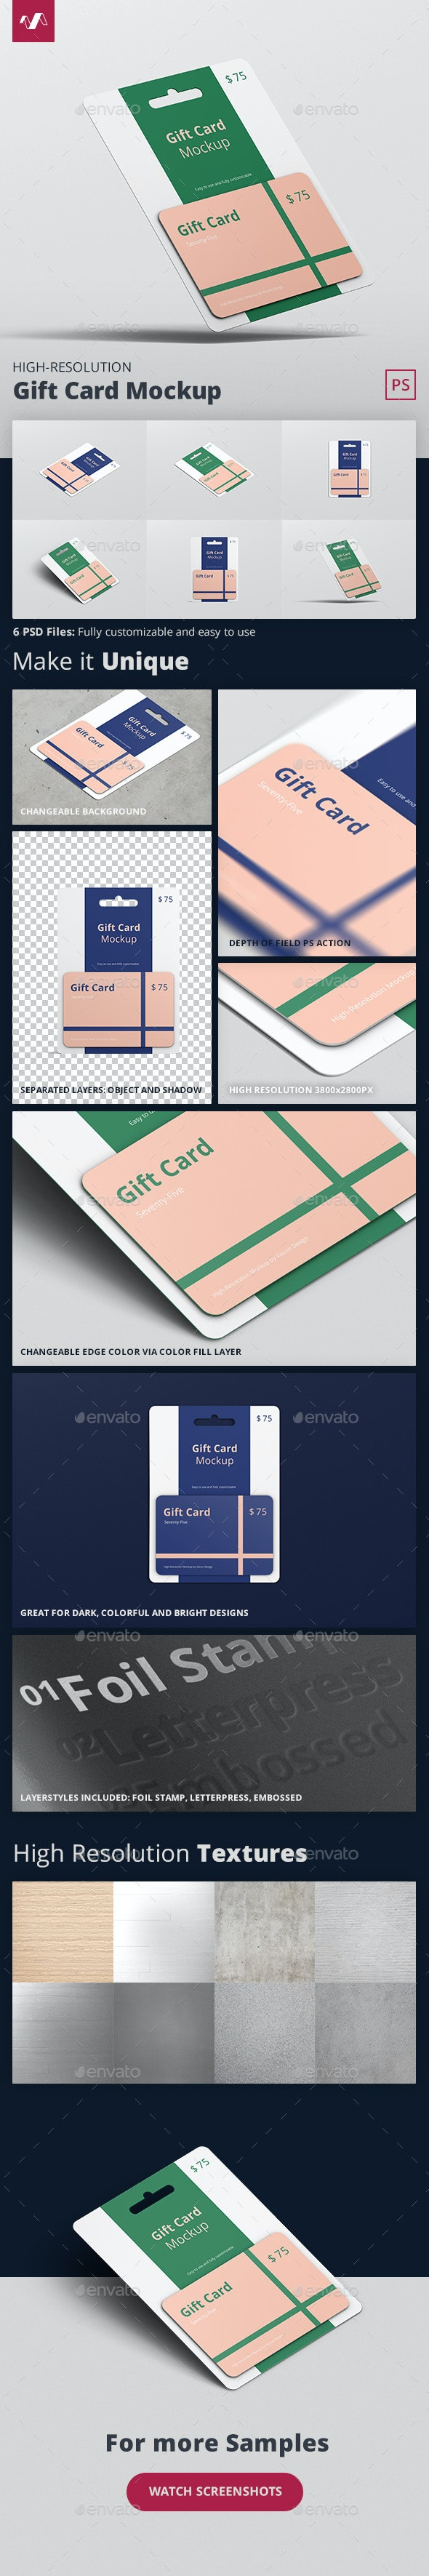 Gift Card Mockup - Business Cards Print